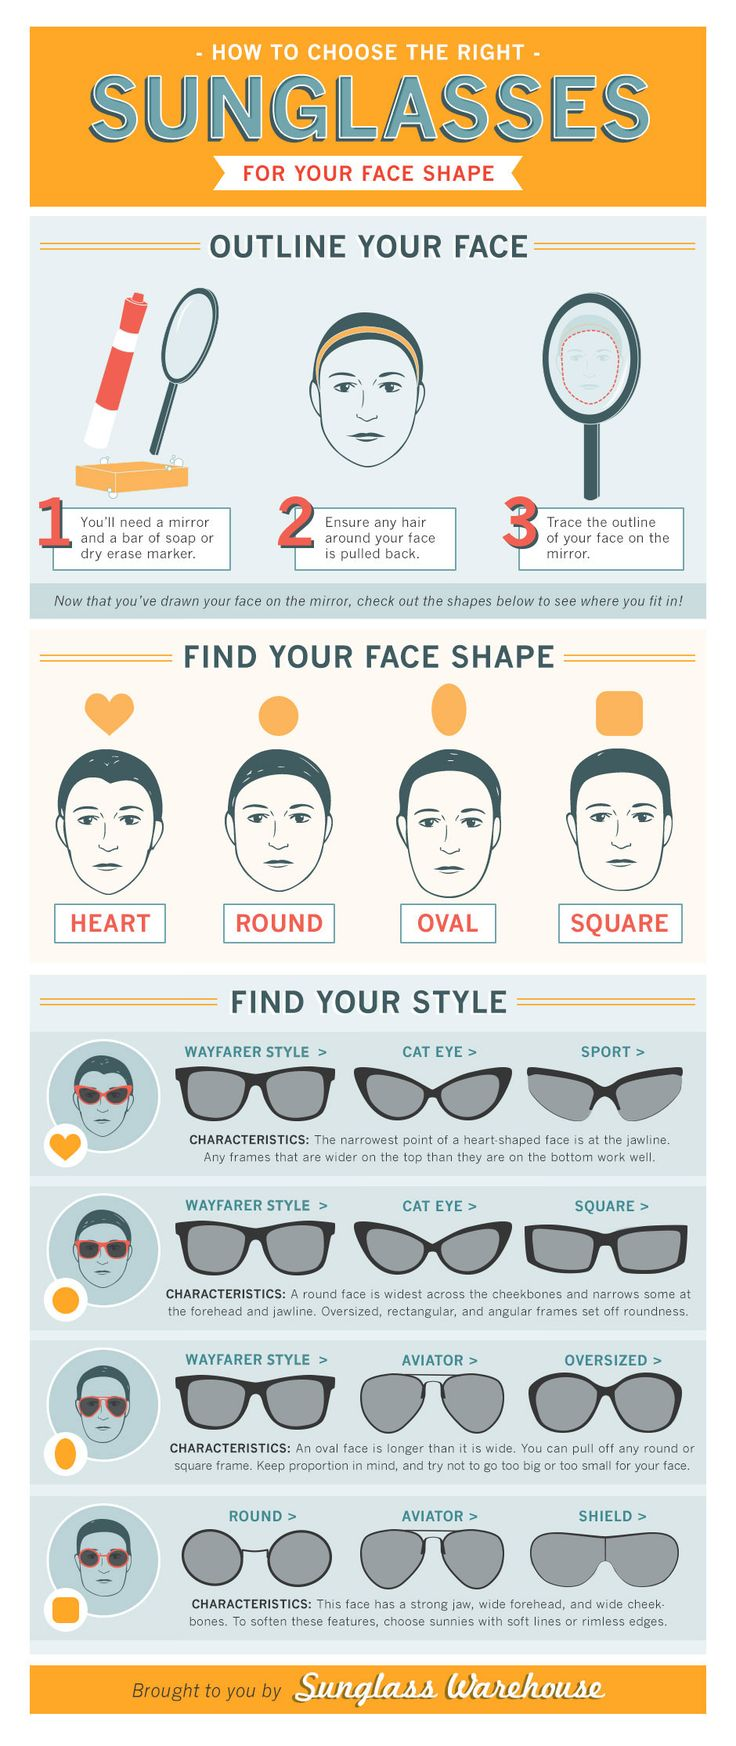 best sunglasses for your face shape, how to pick sunglasses for your face shape